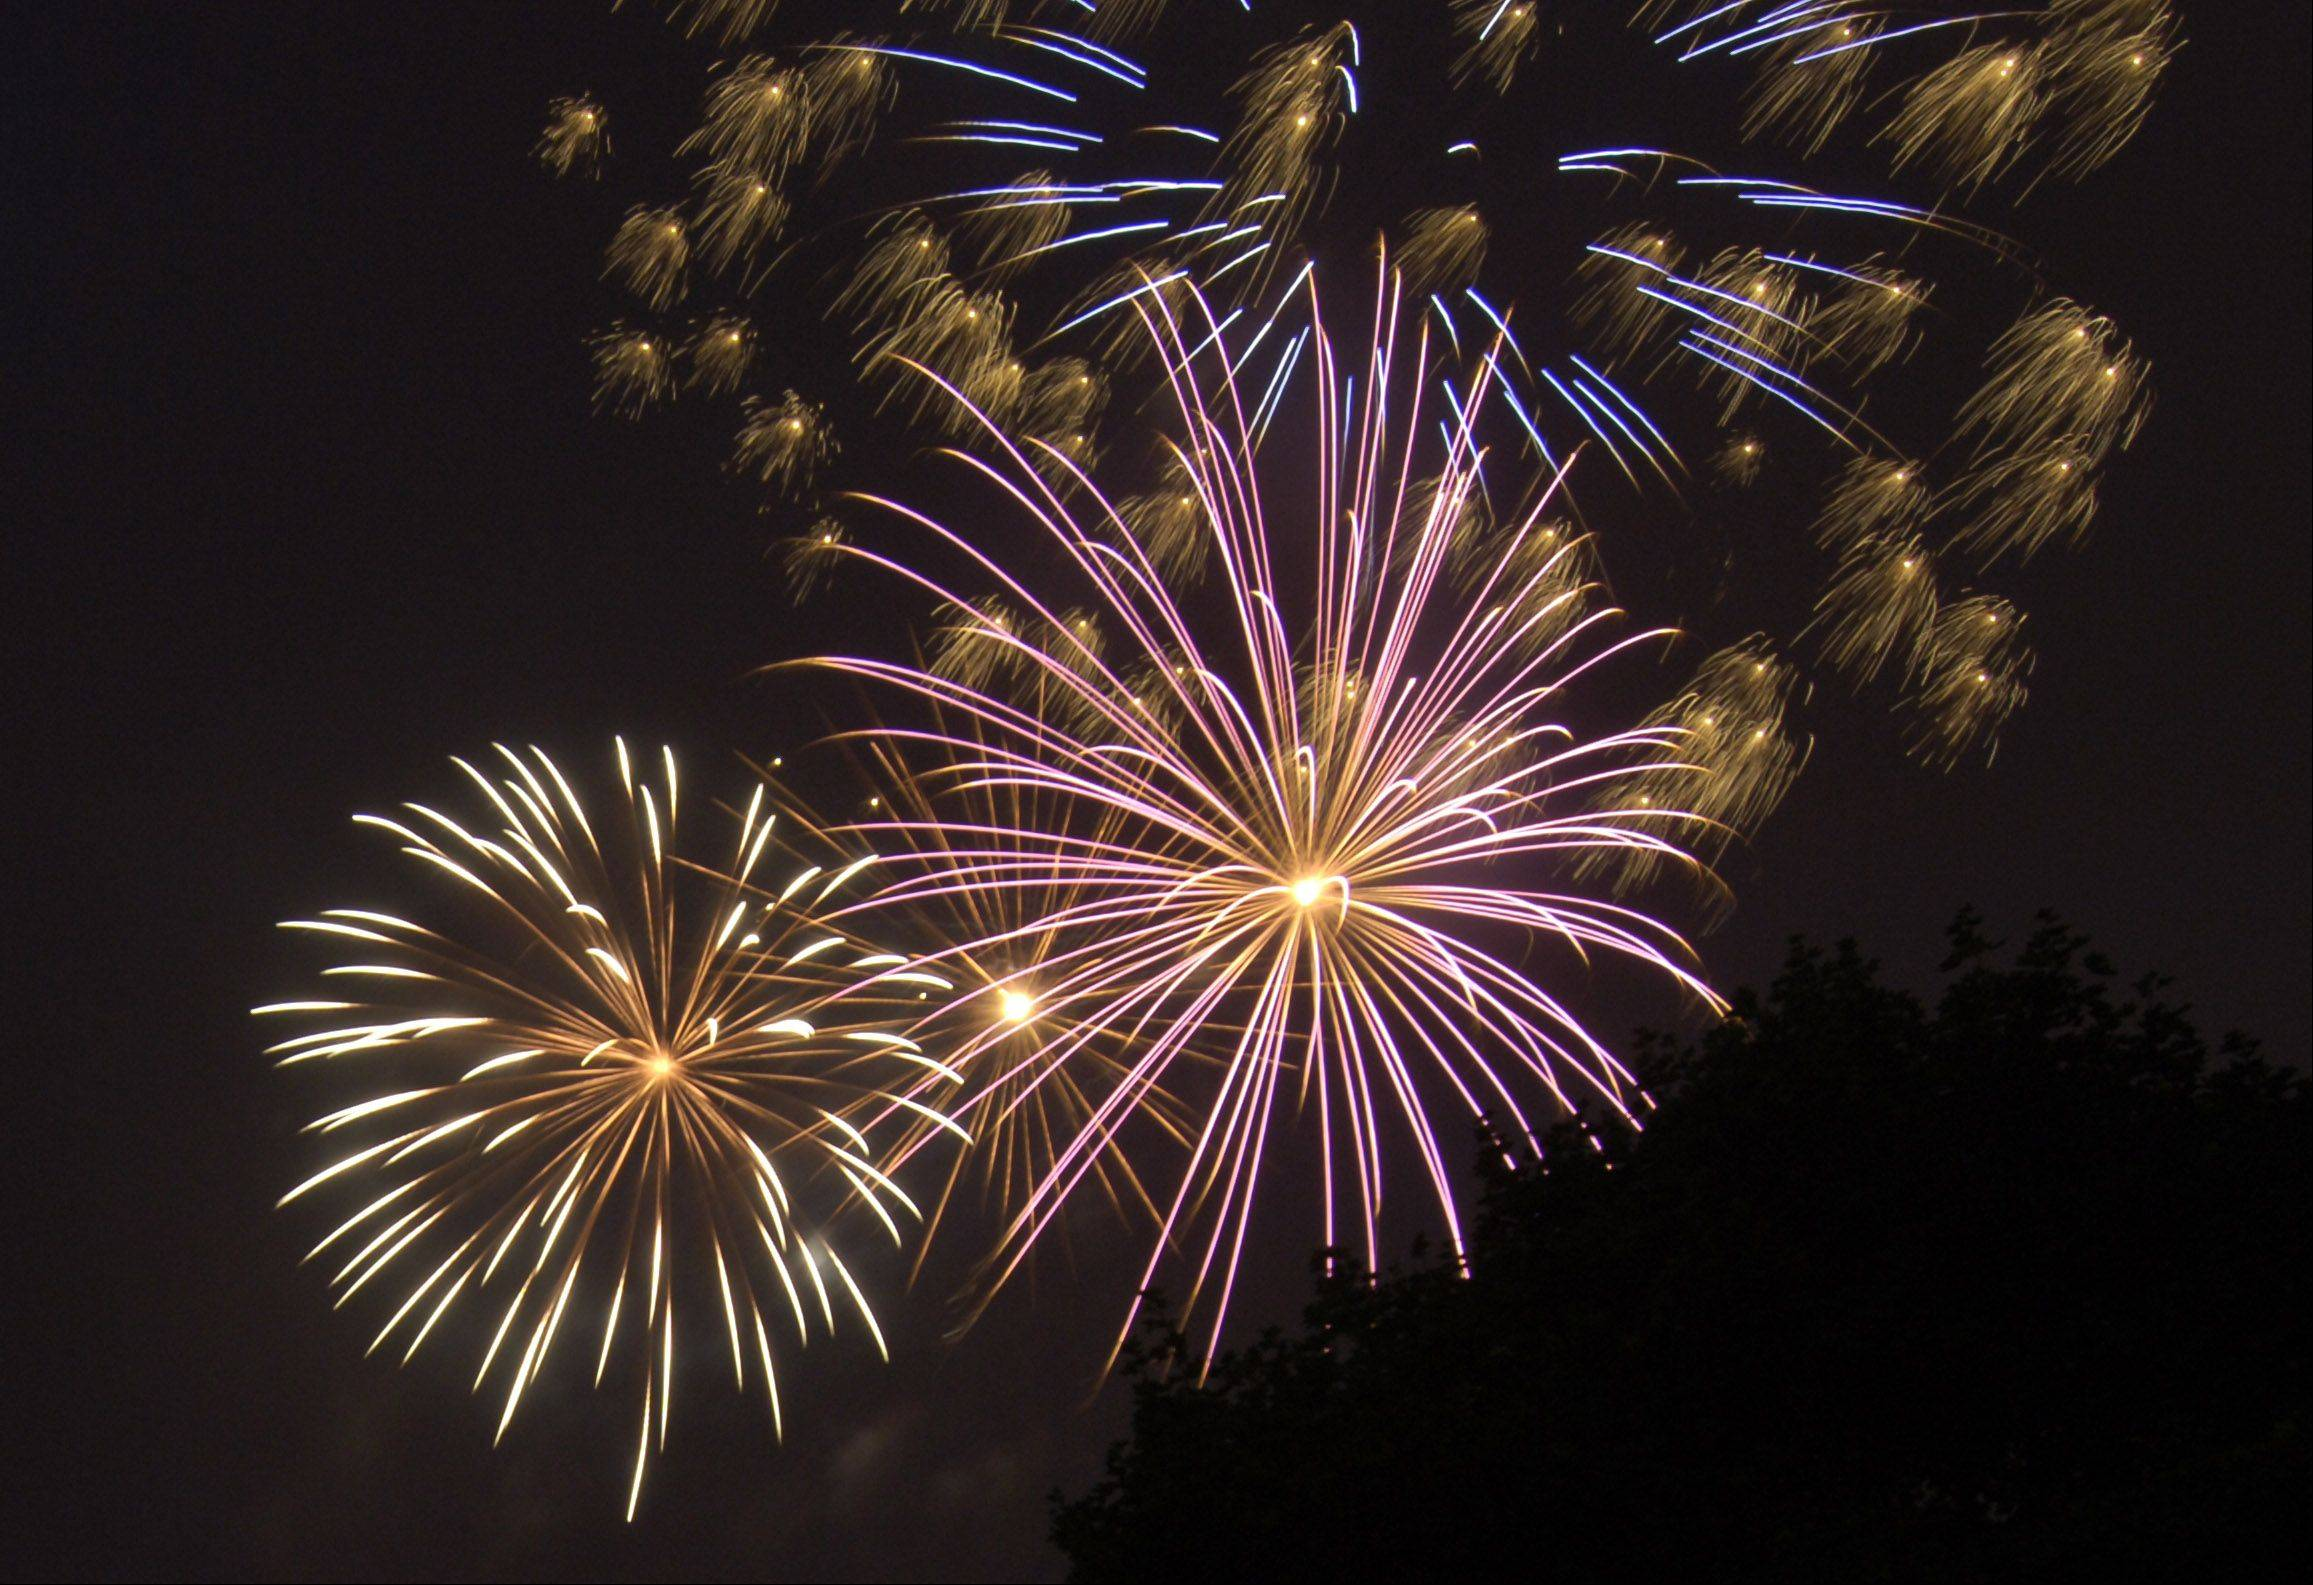 Hoffman Estates closer to choosing fireworks provider